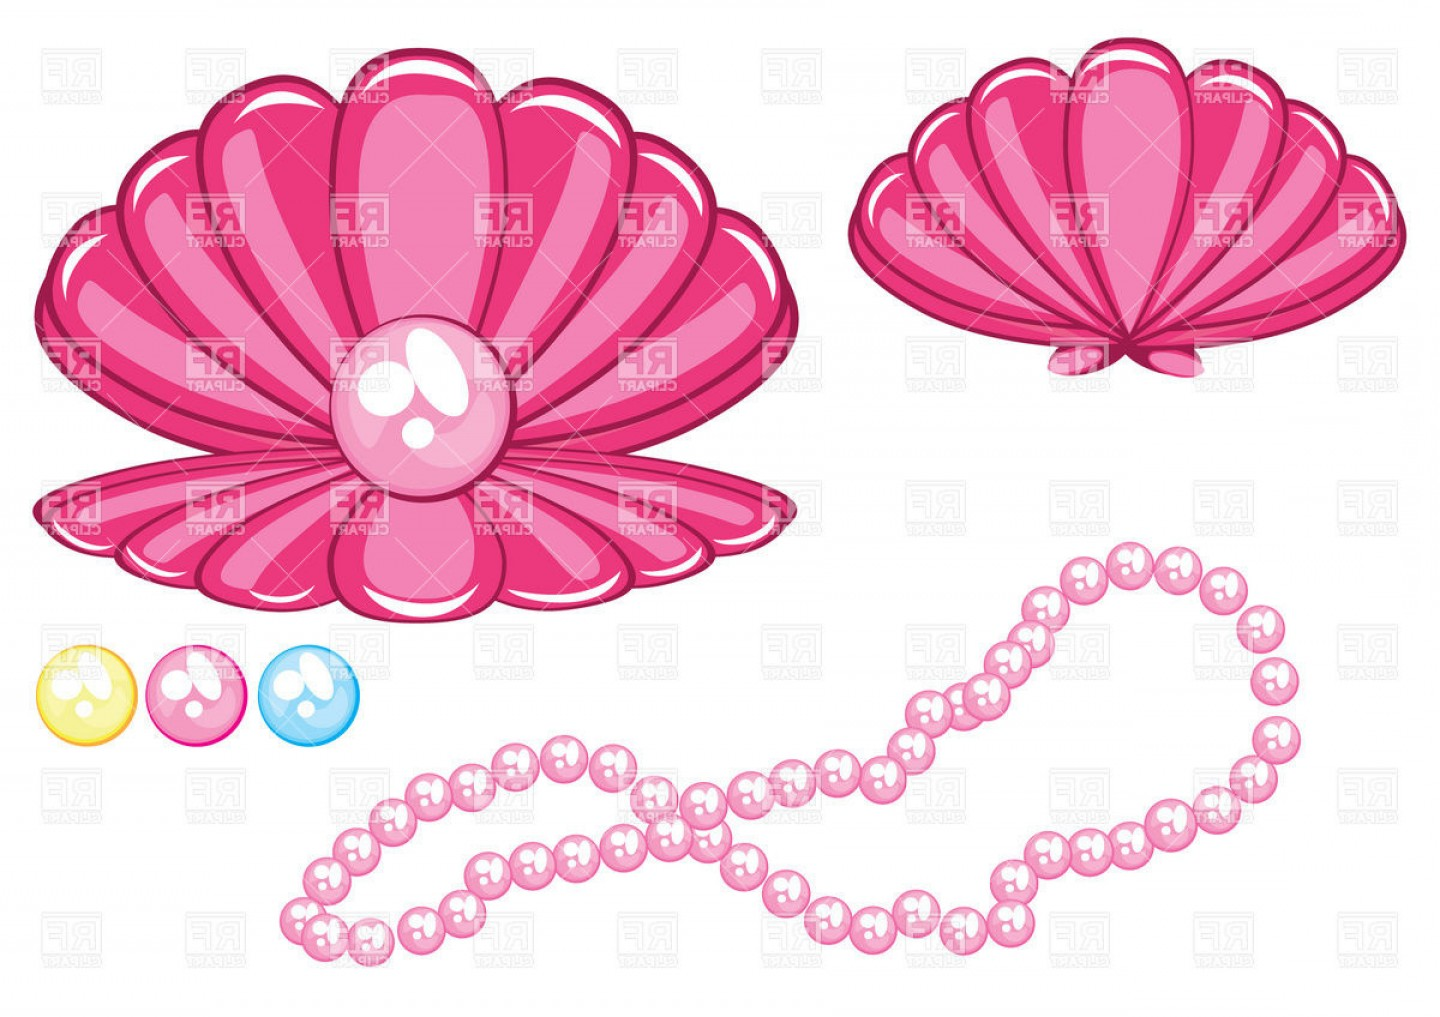 Pearl Necklace Vector Clip Art: Marine Cockleshell With A Pearl Download Royalty Free Vector File Eps Lively Clip Art